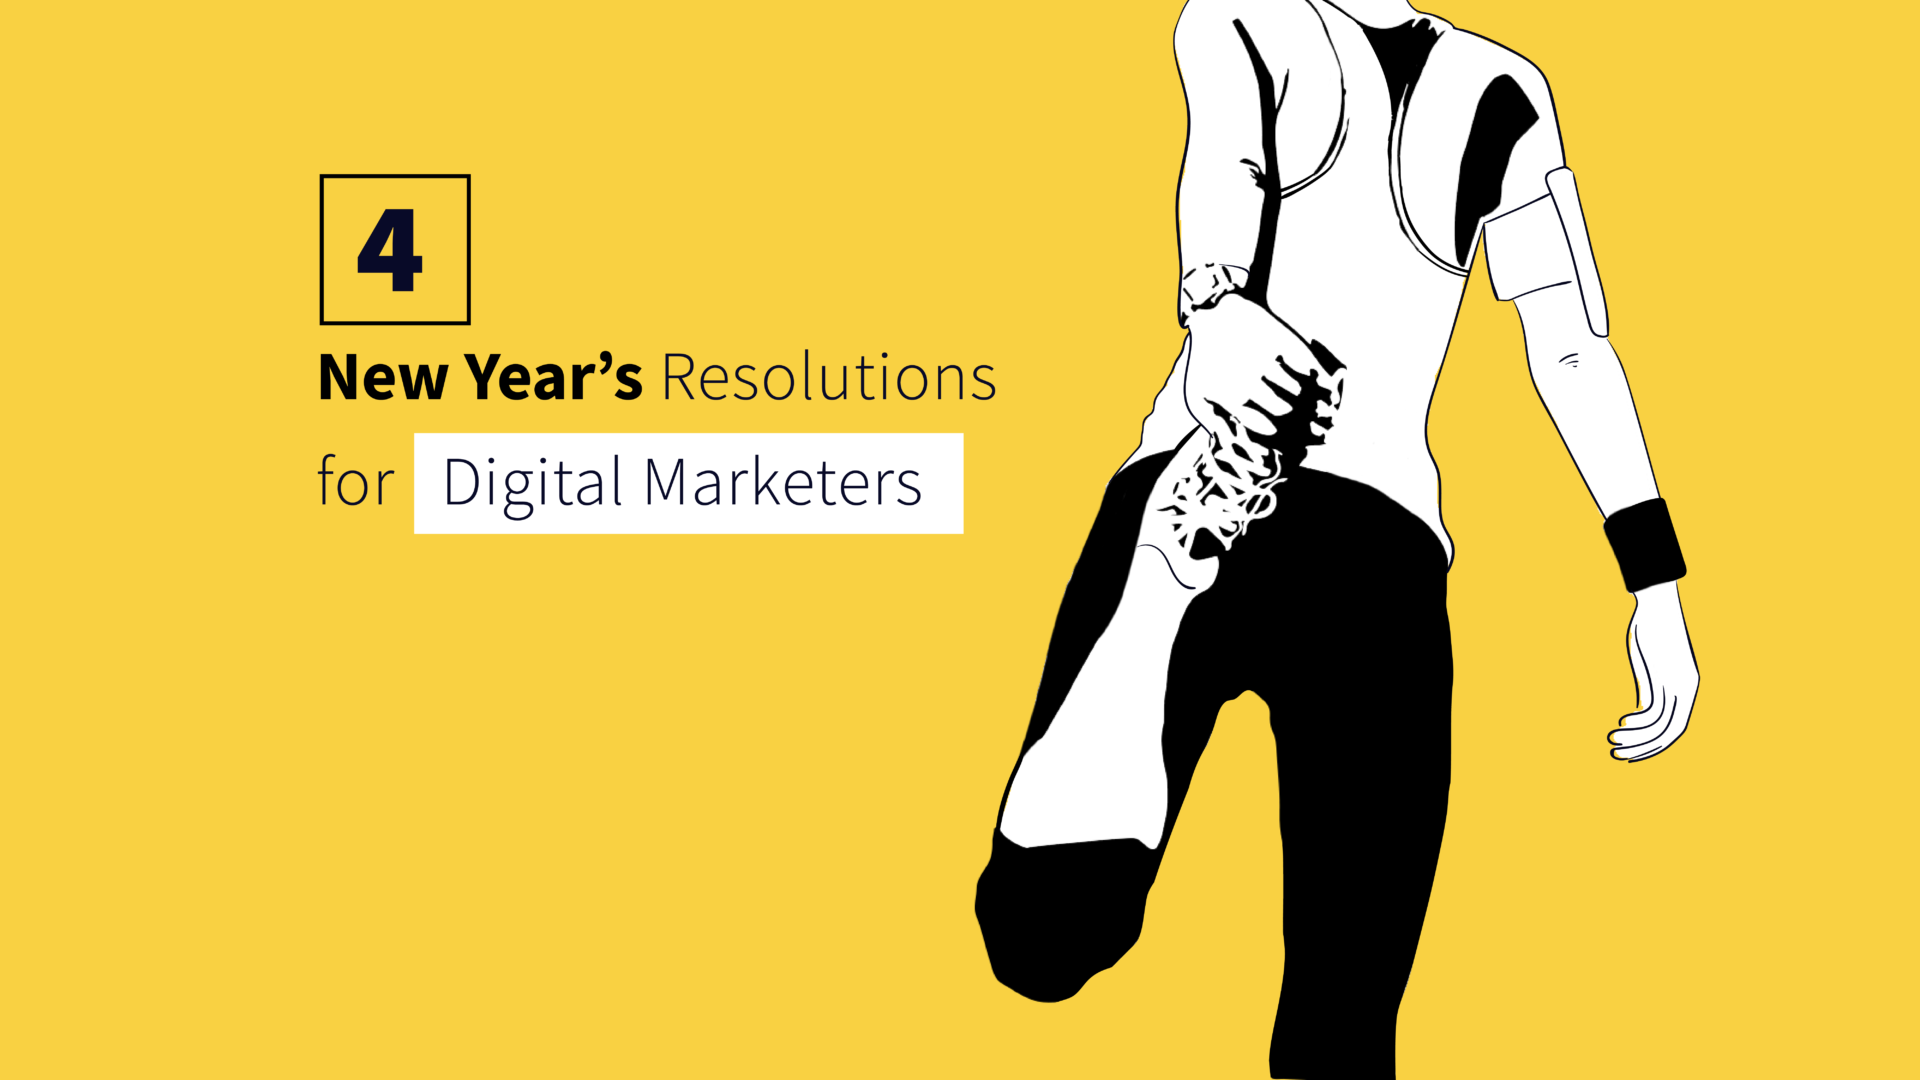 4 New Year's Resolutions for Digital Marketers